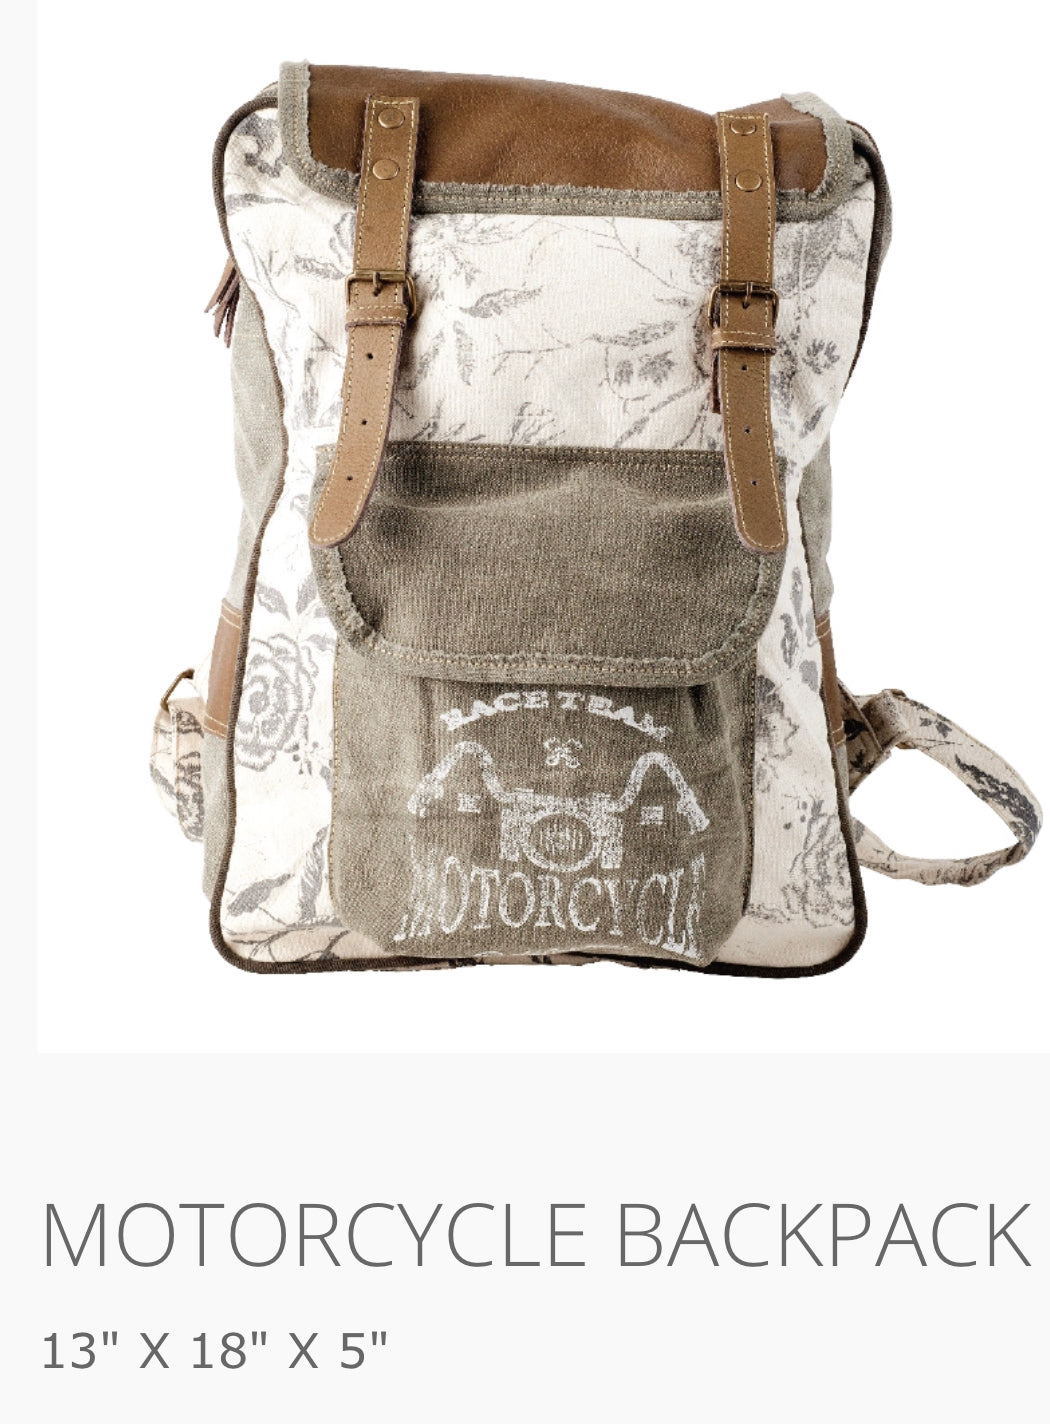 Backpack floral motorcycle - The Wall Kids, Inc.